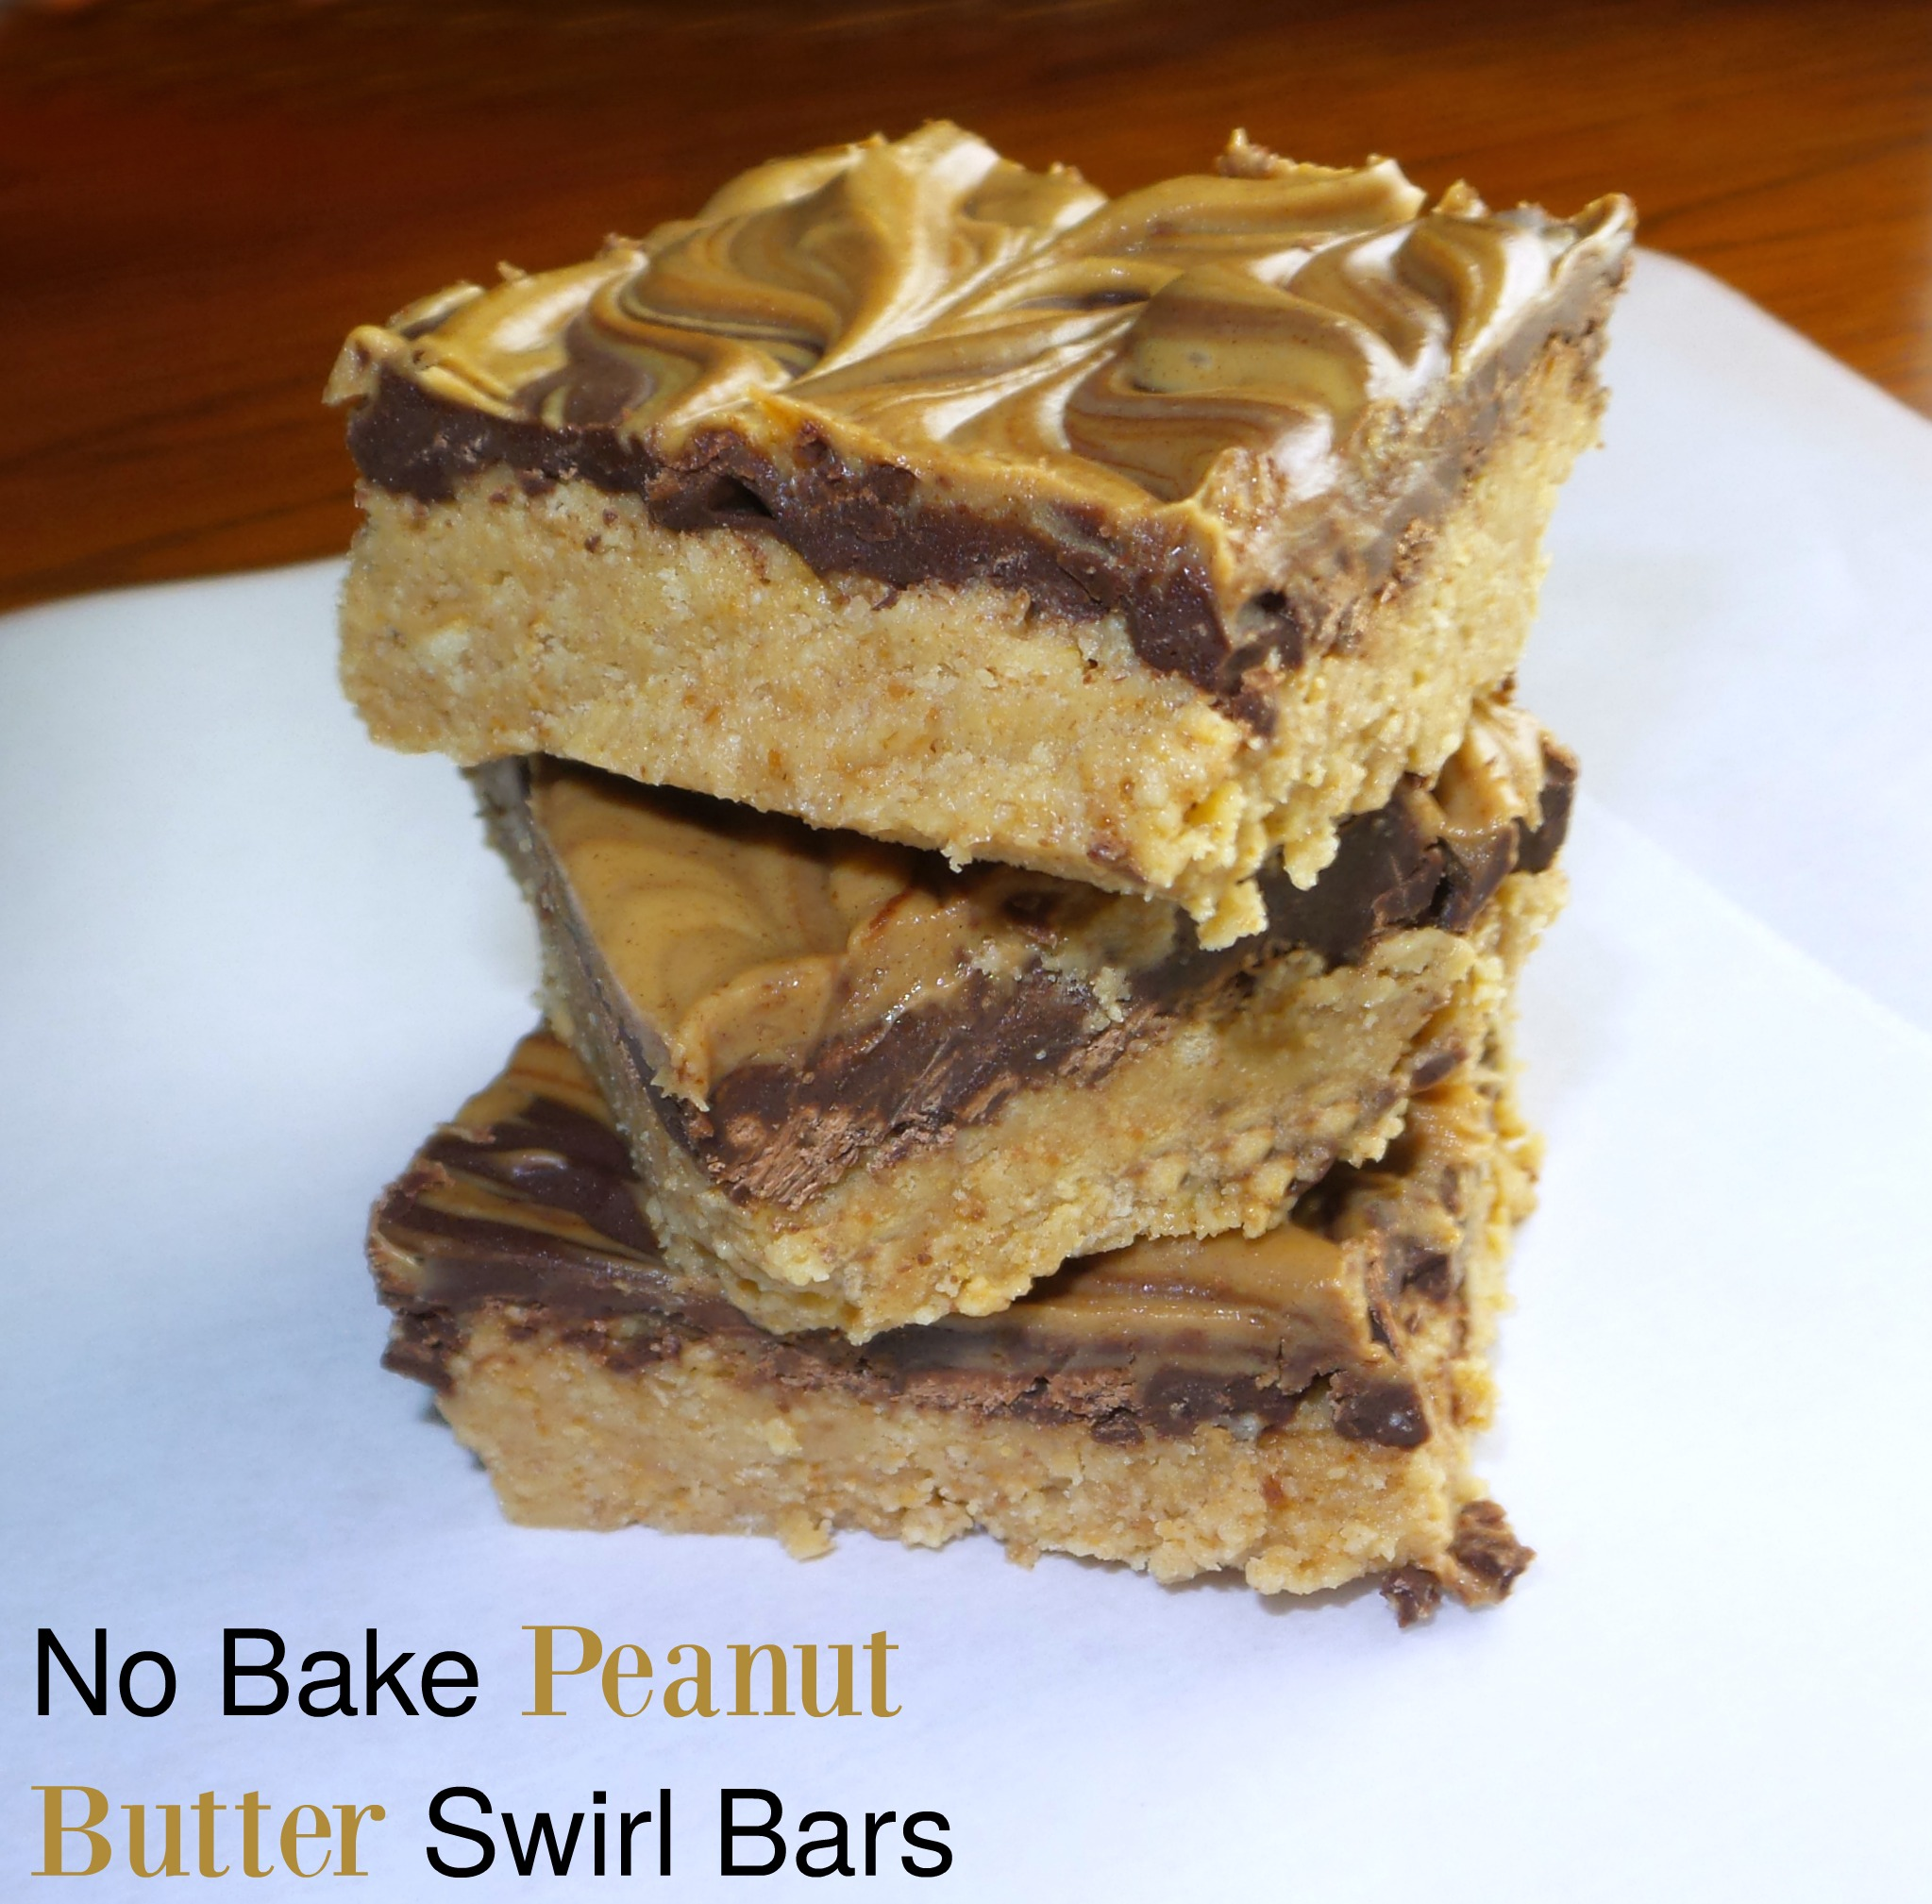 Delicious no bake peanut butter swirl bars!